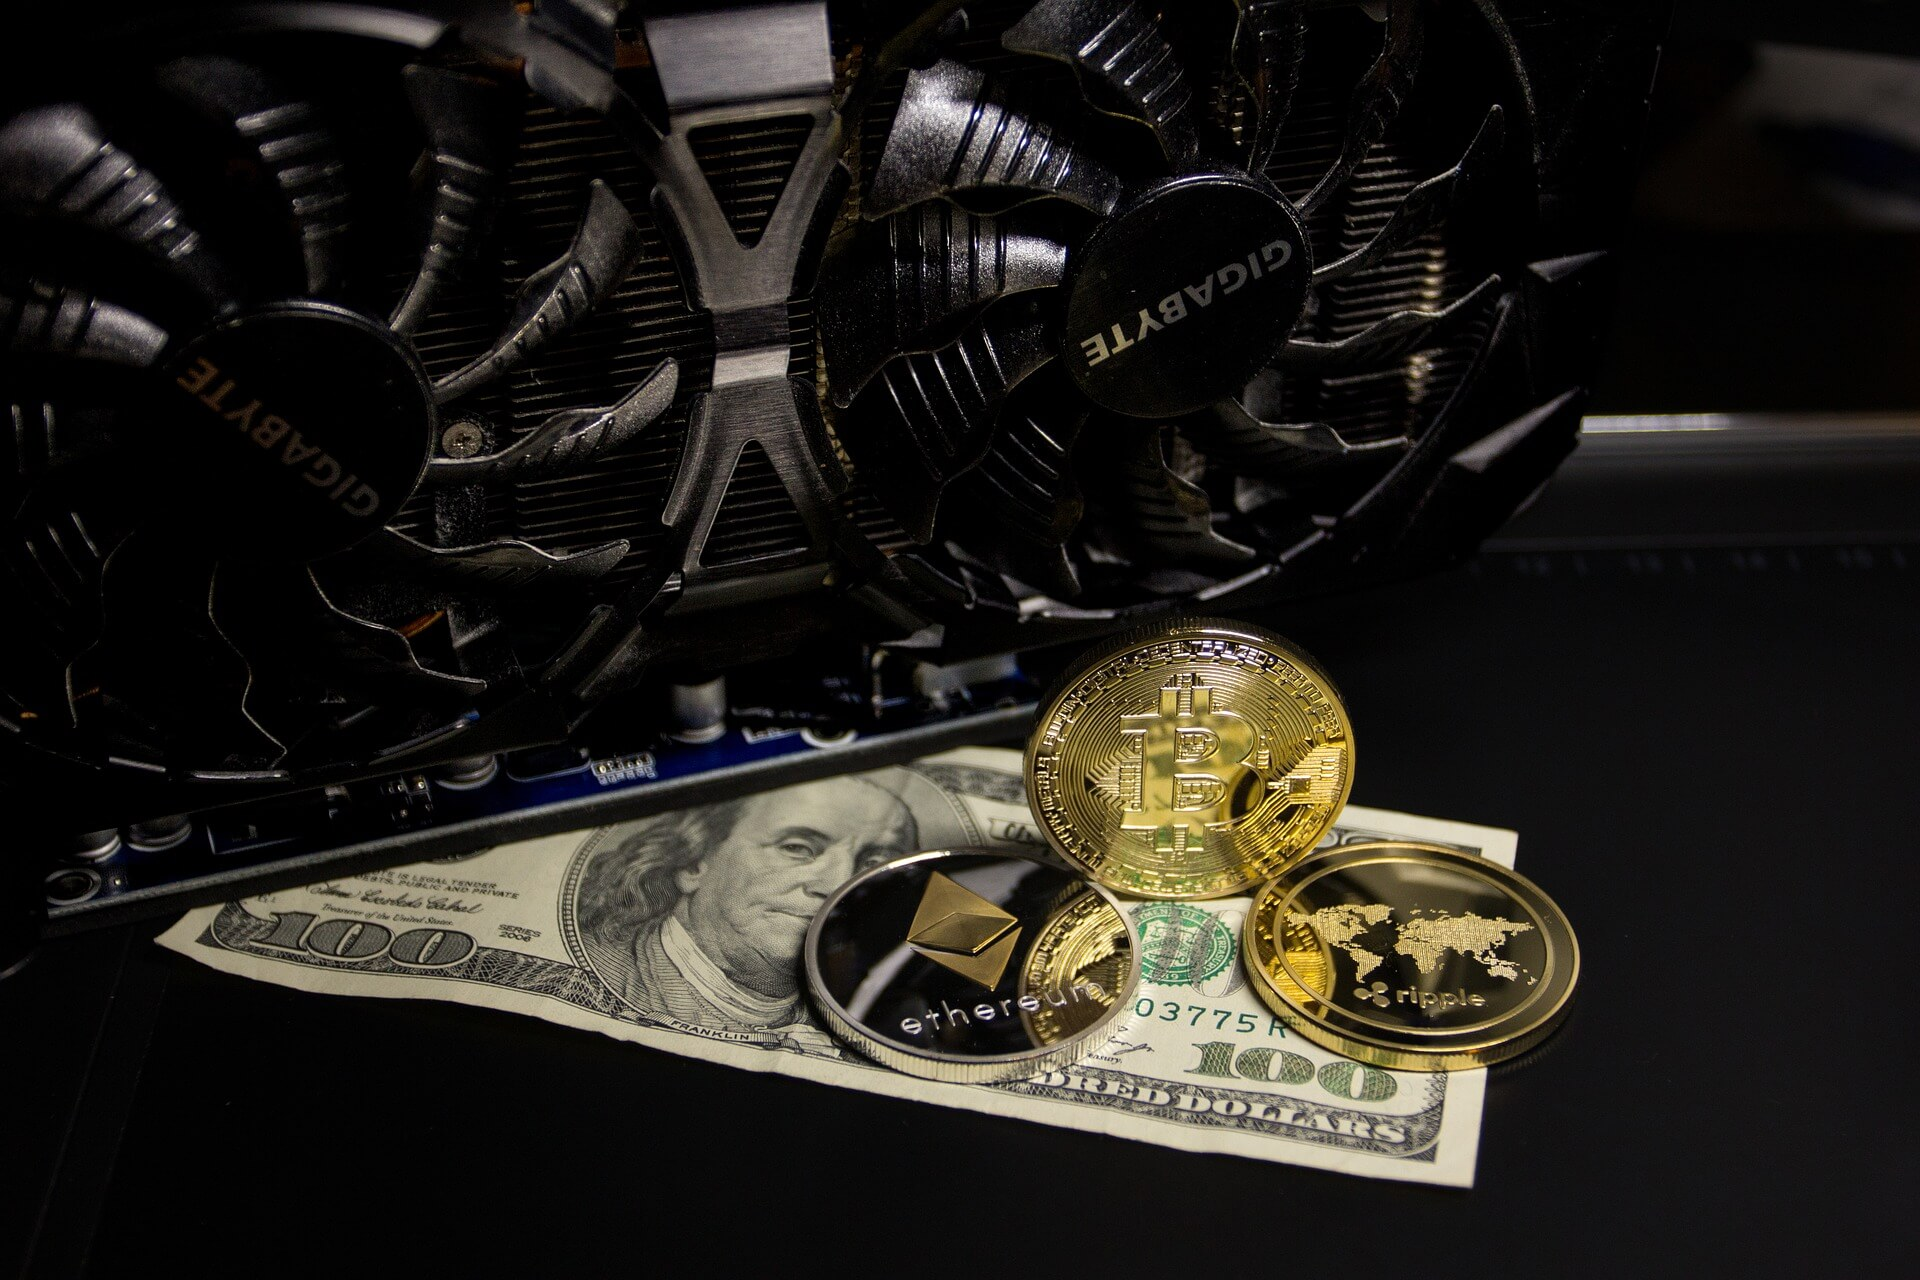 13 of the world's top banks invest $63million in crypto versions of global currency